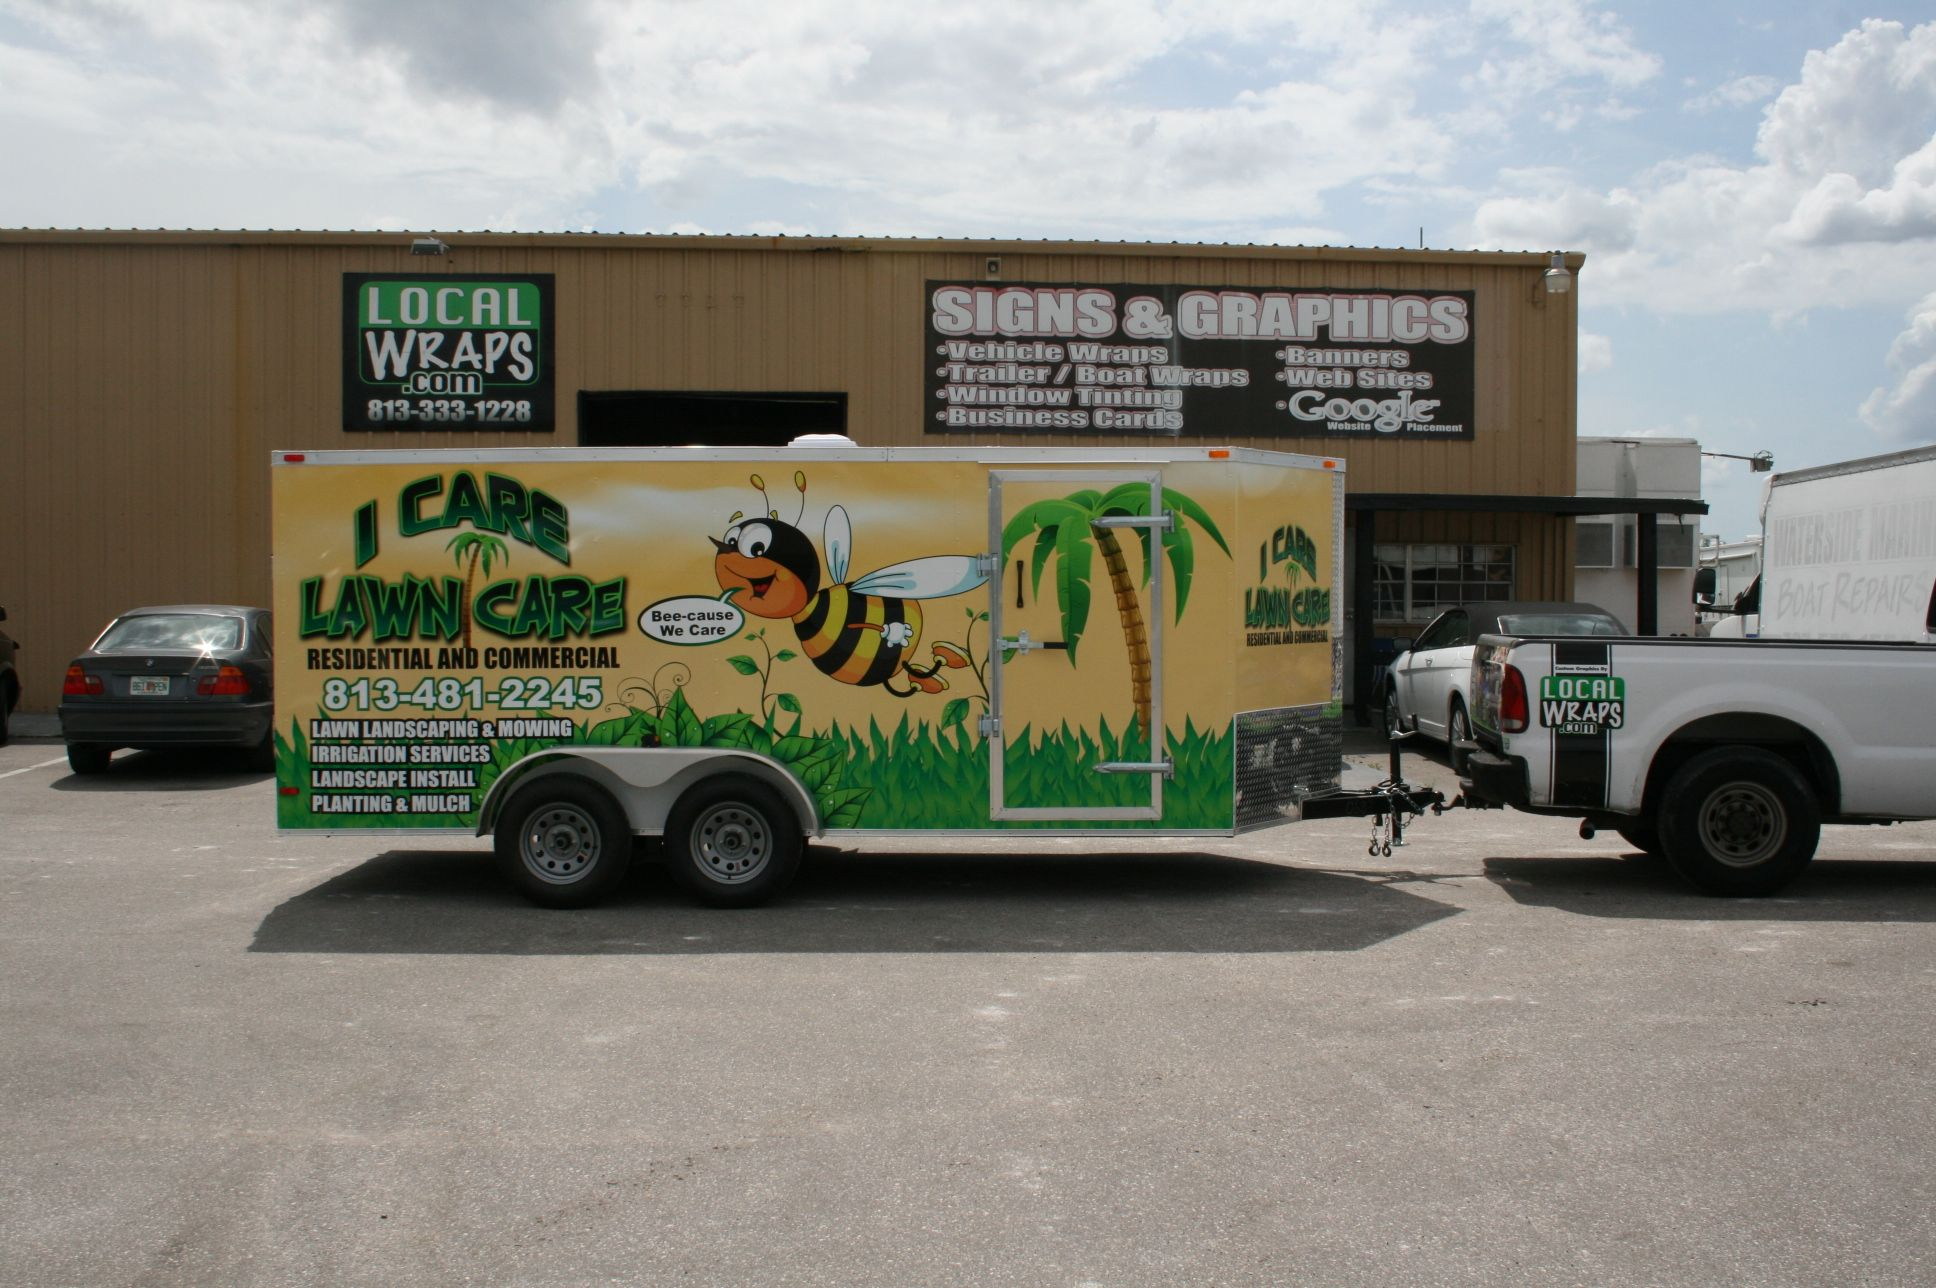 I Care Lawn Care Trailer Wrap | business logos and names | Pinterest ...